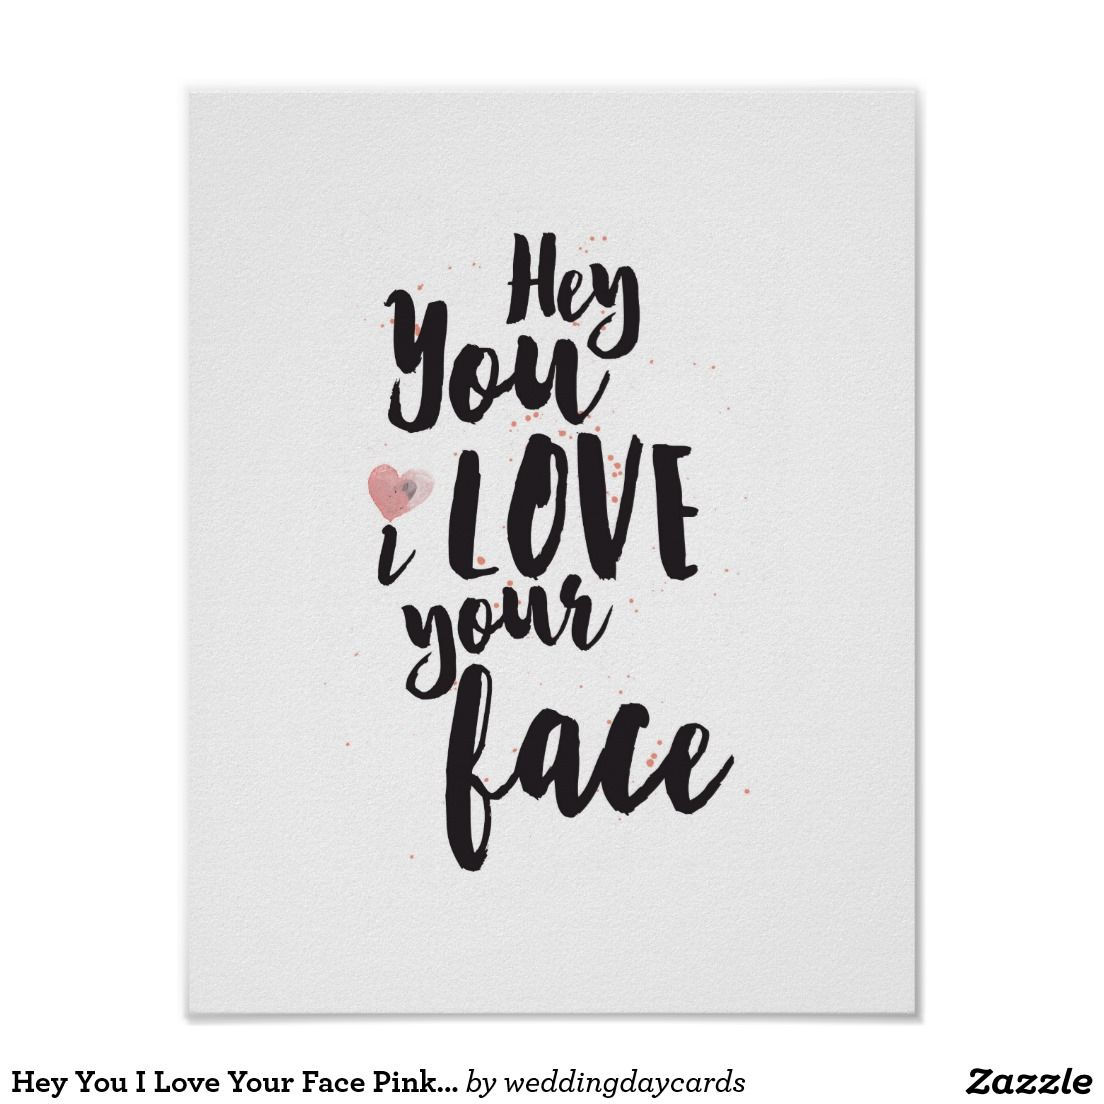 Hey You I Love Your Face Pink Heart Poster Zazzle Com I Love Your Face Love You Friend I Love You Quotes